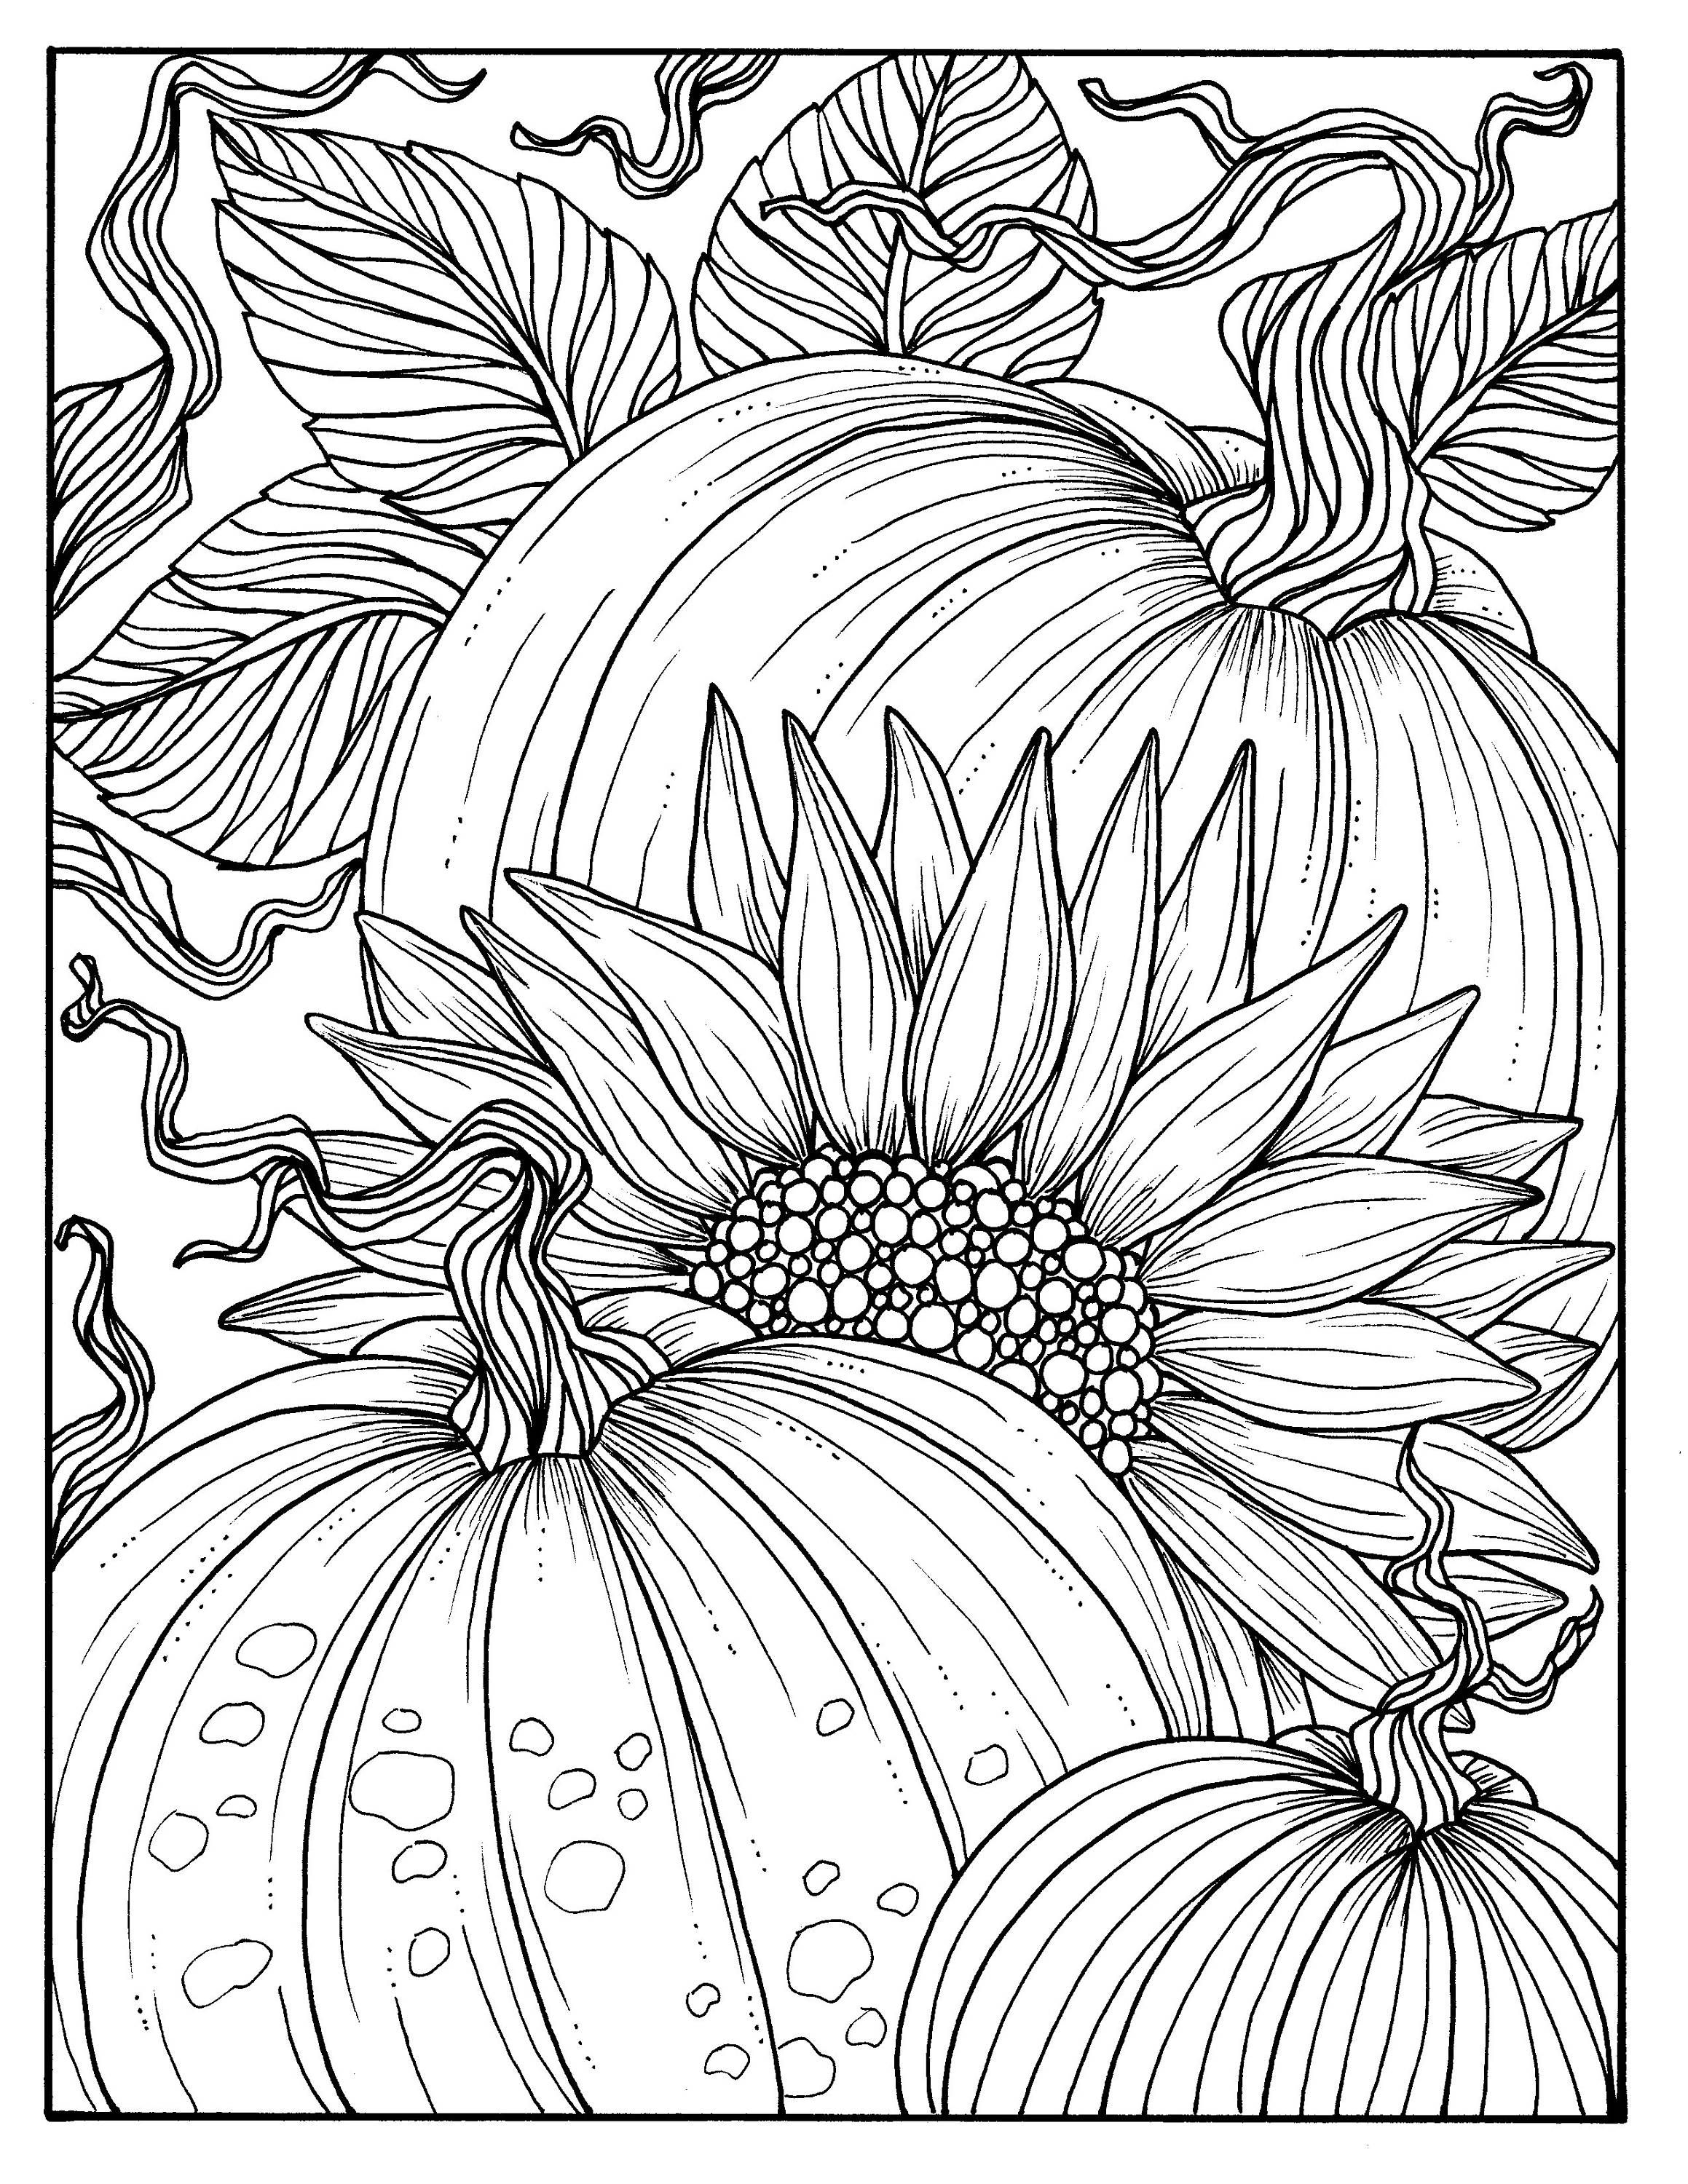 5 Pages Fabulous Fall Digital Downloads To Color Punpkins Etsy Pumpkin Coloring Pages Fall Coloring Pages Fall Coloring Sheets